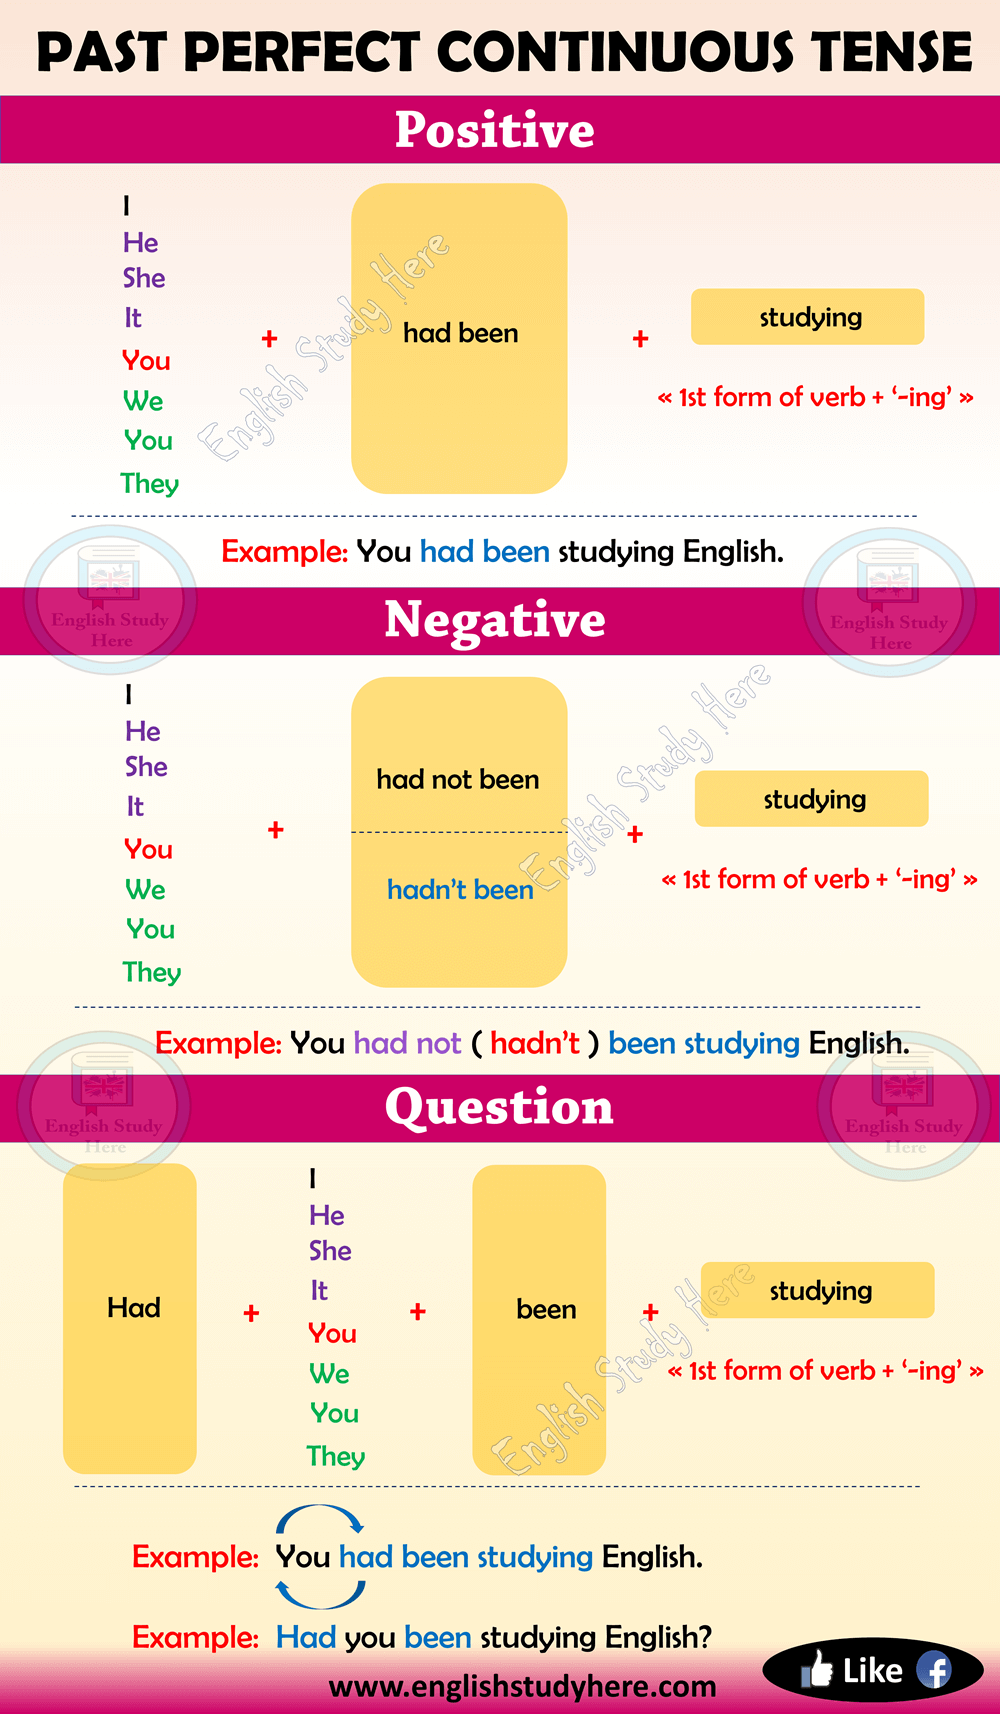 Past Perfect Continuous Tense in English - English Study Here